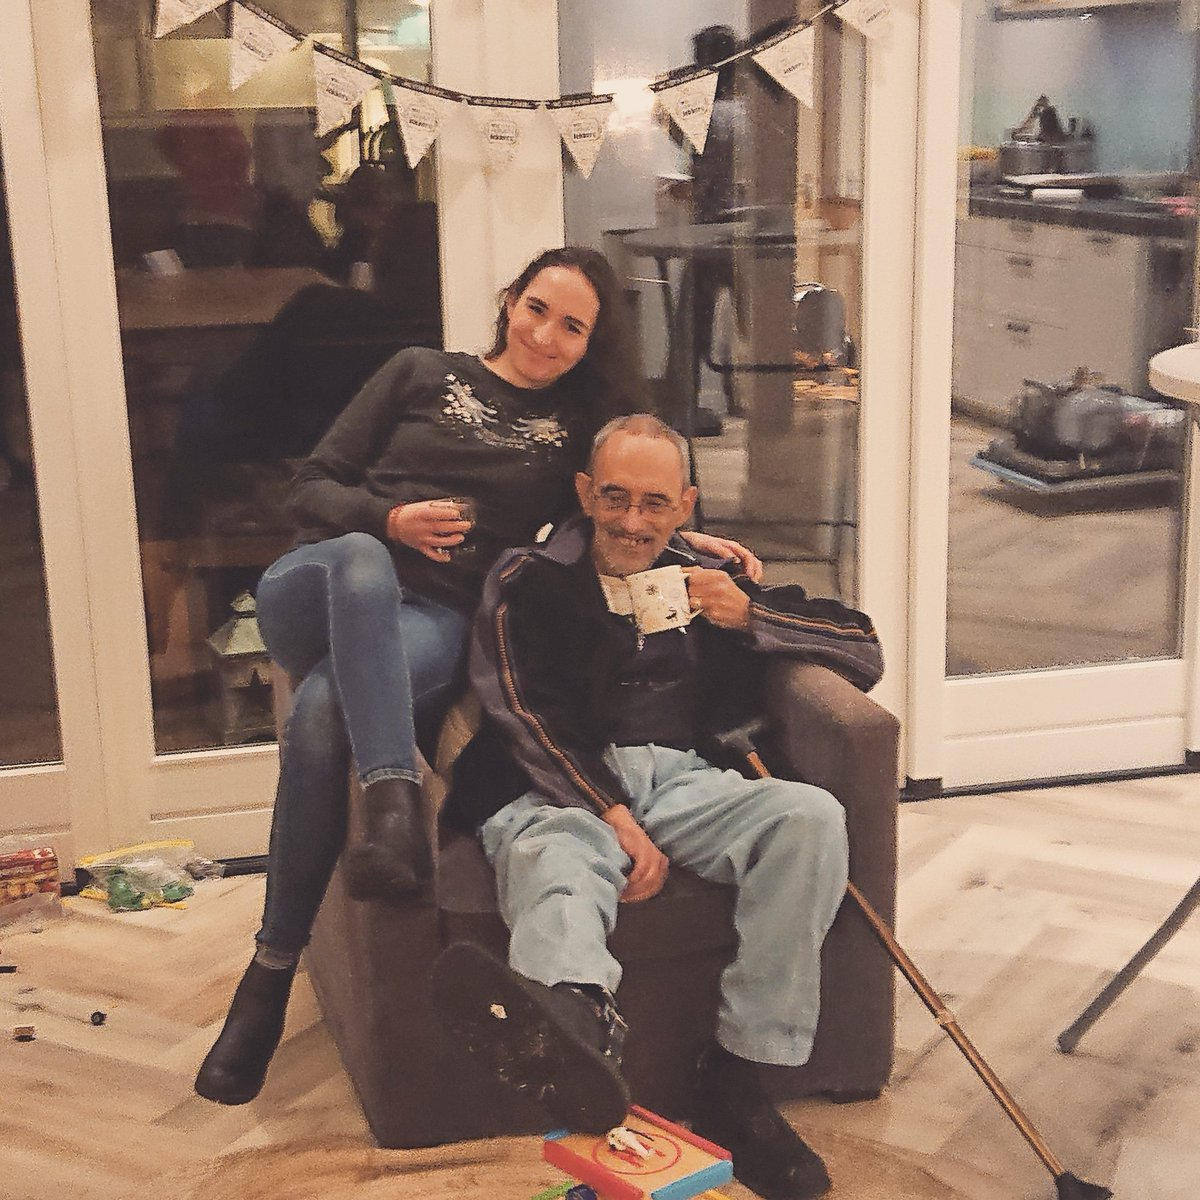 No footrest? No problem! Gotta be creative with hemiparesis during the holidays. Thanks kids! (Dad and me) #Disabilityday2019 #DisabilityIsAbility #Sinterklaasavond